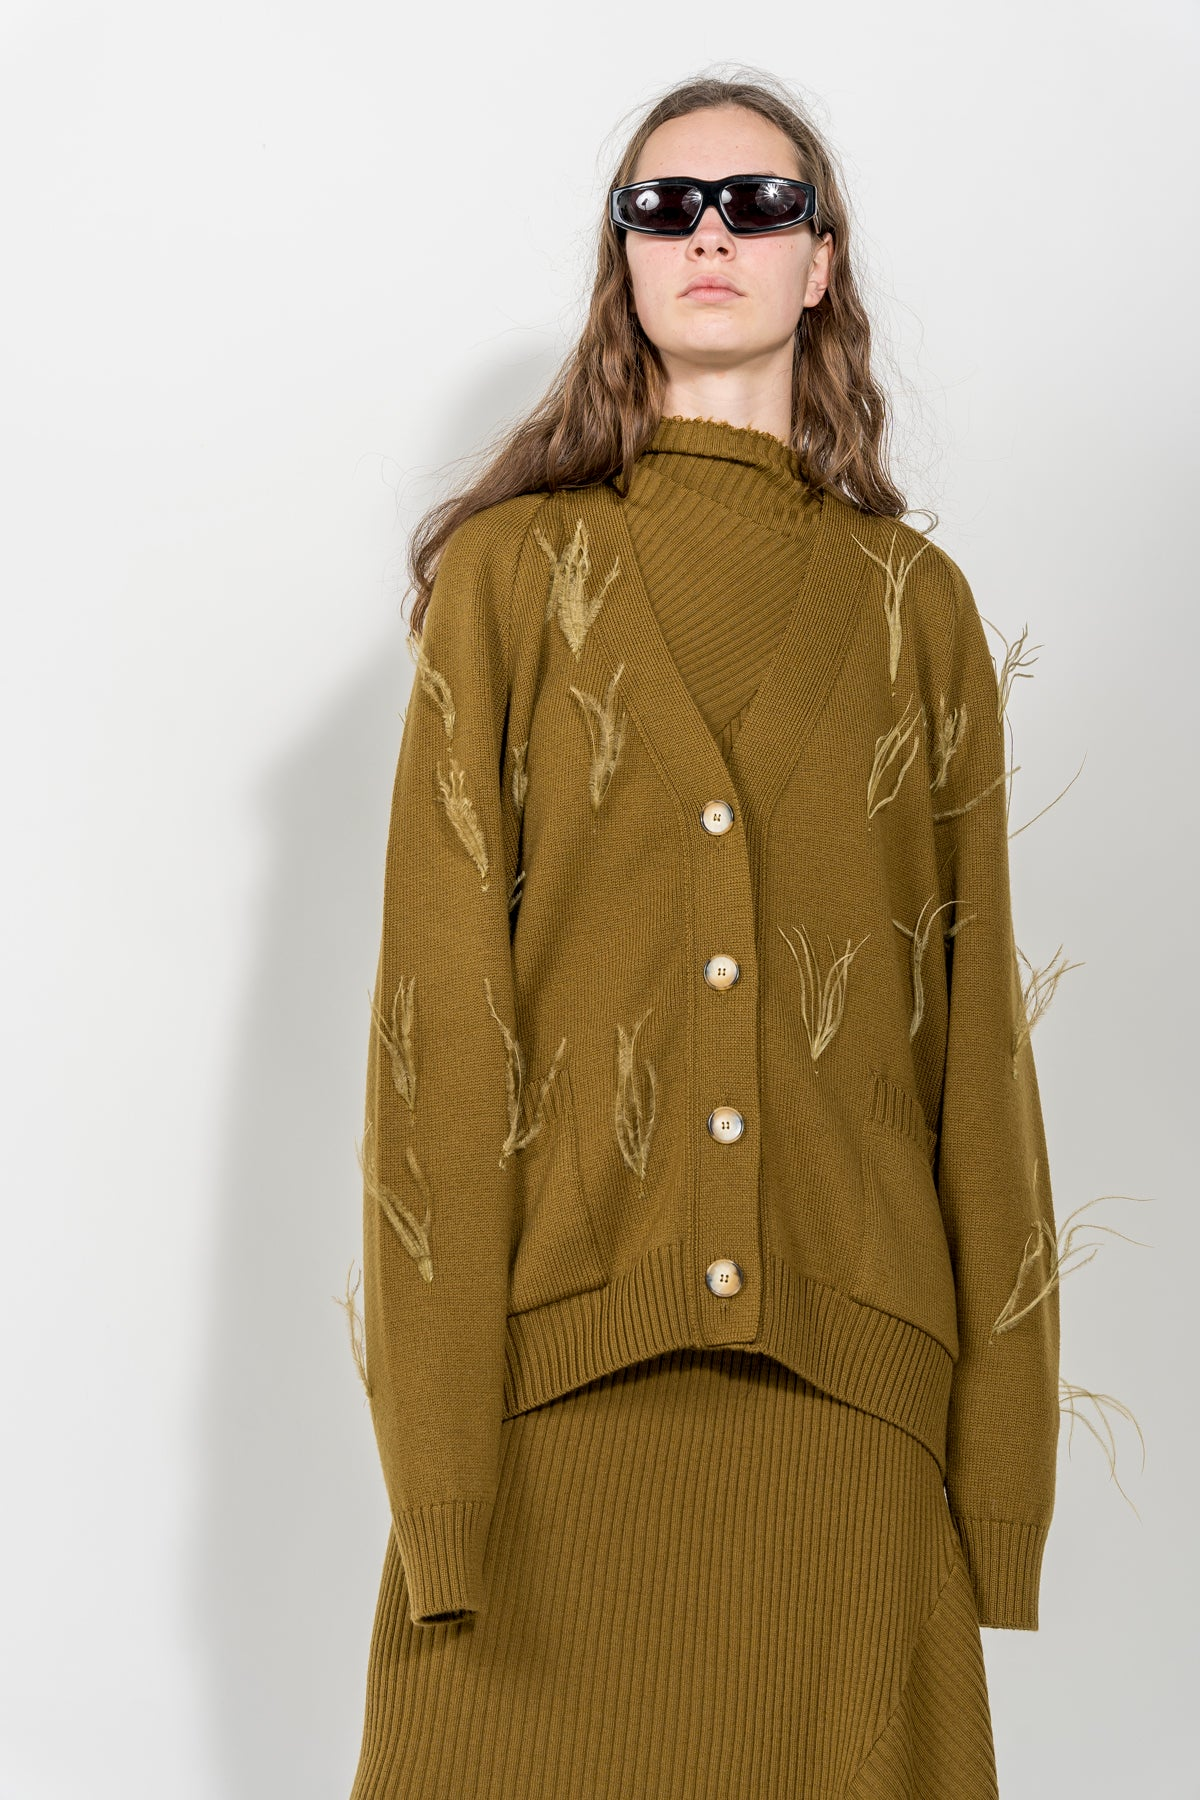 MUSTARD OVERSIZED CARDIGAN WITH FEATHERS MARQUES ALMEIDA